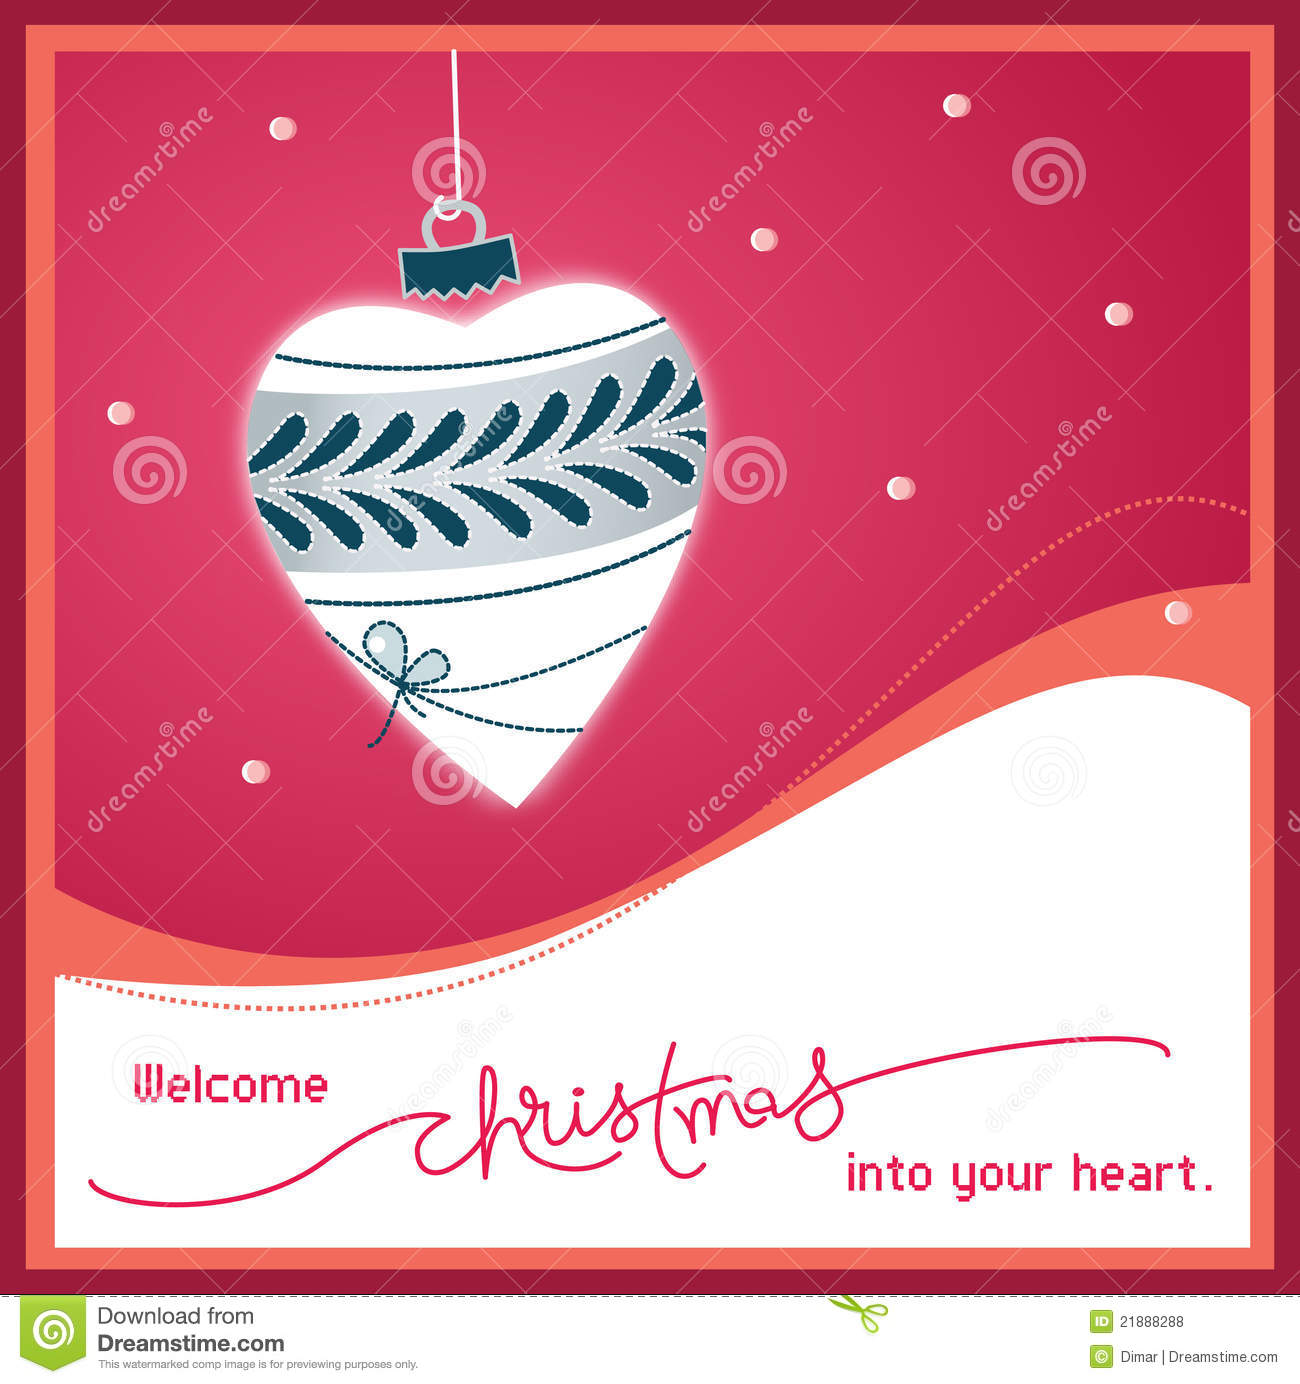 Welcome christmas into your heart stock vector